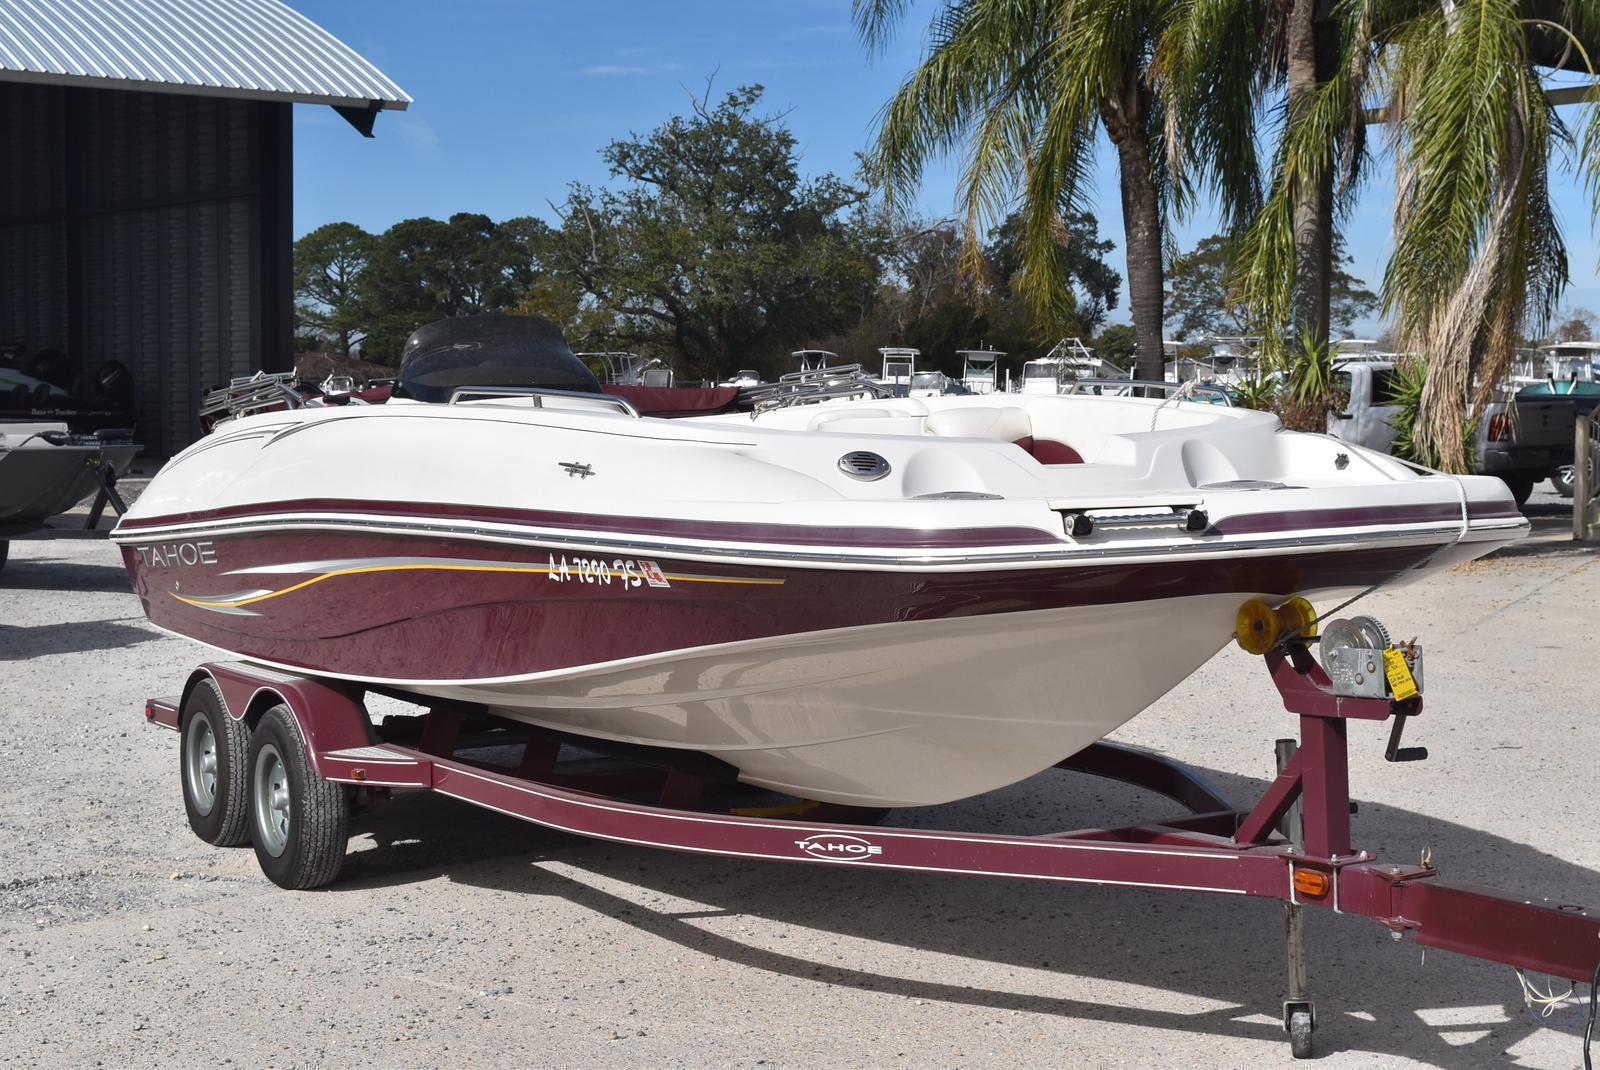 2008 Tahoe boat for sale, model of the boat is 215 & Image # 2 of 20